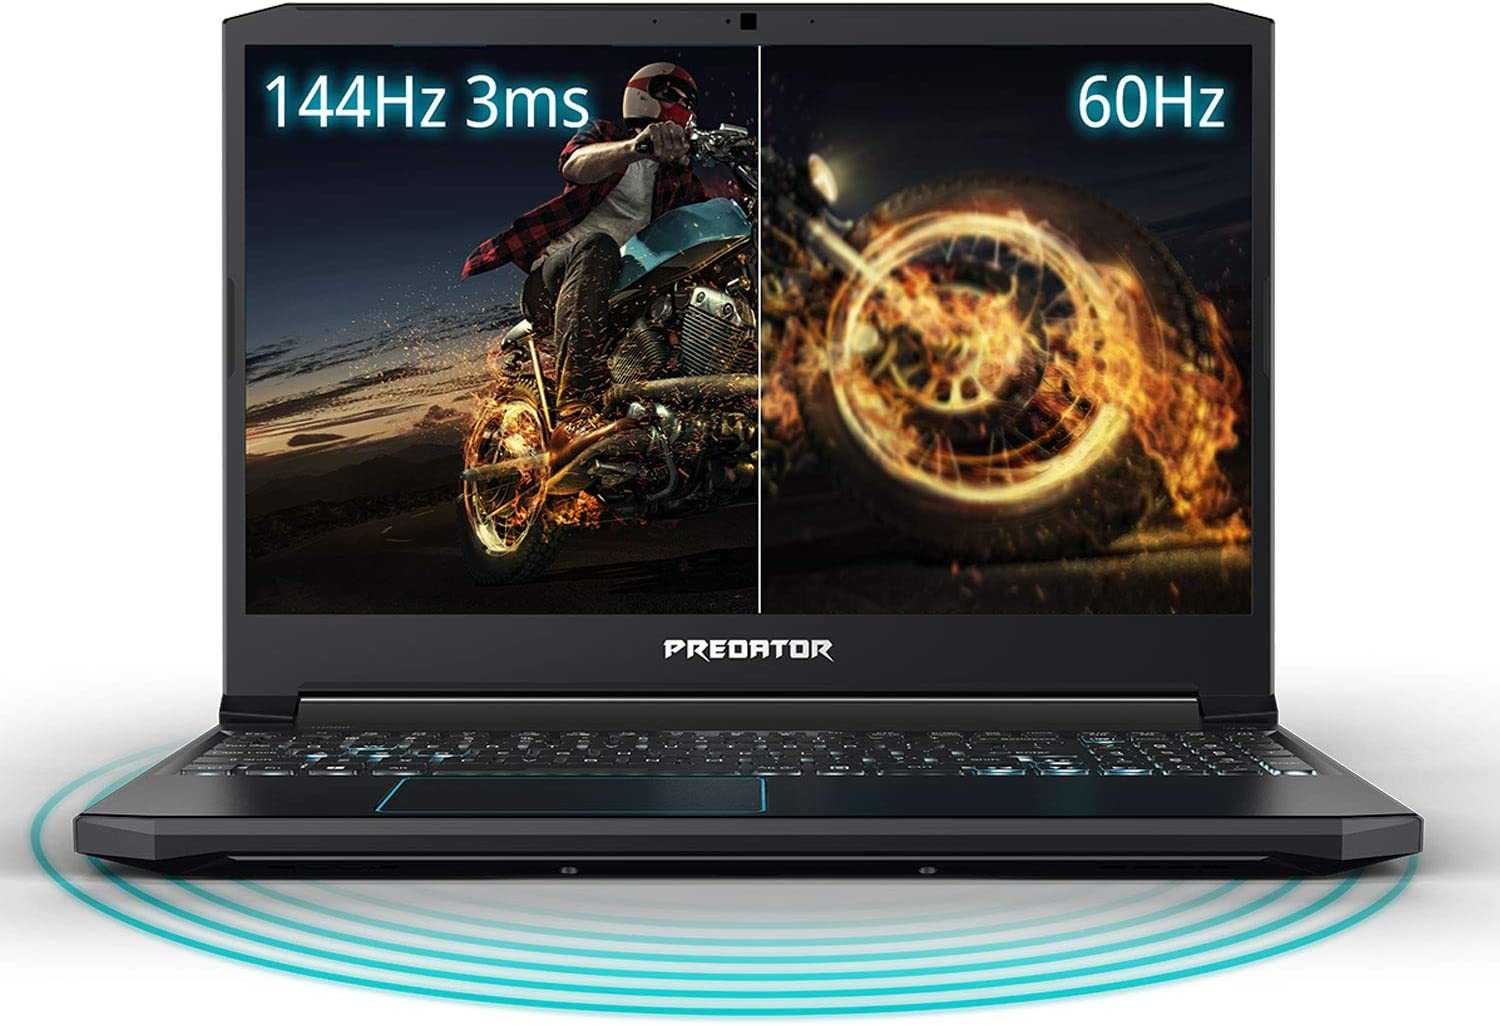 Best Gaming Laptop for Overwatch in 2021